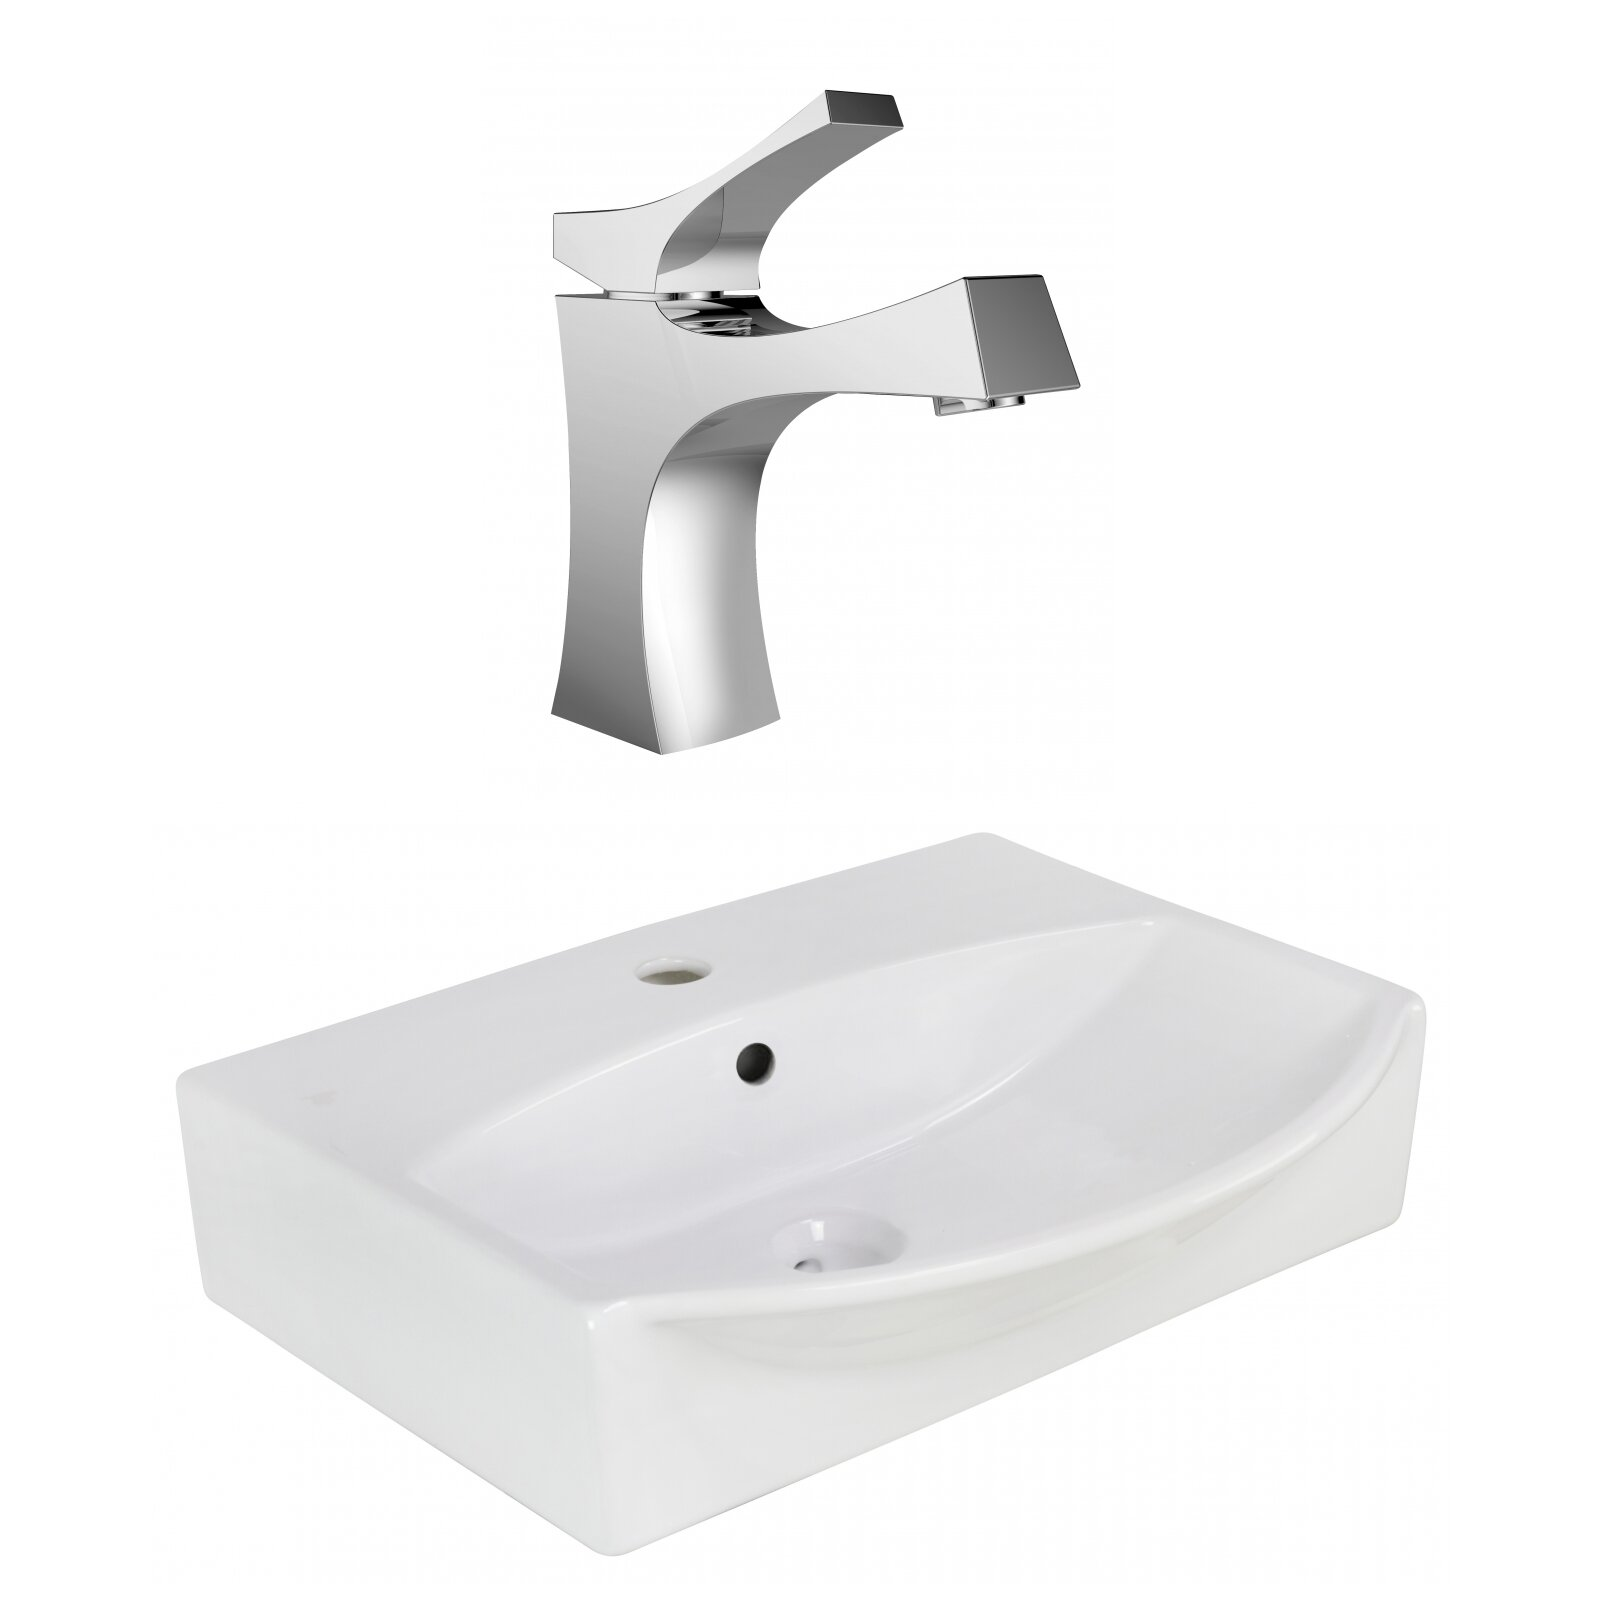 American Imaginations Ceramic U Shaped Bathroom Sink With Faucet And Overflow Wayfair